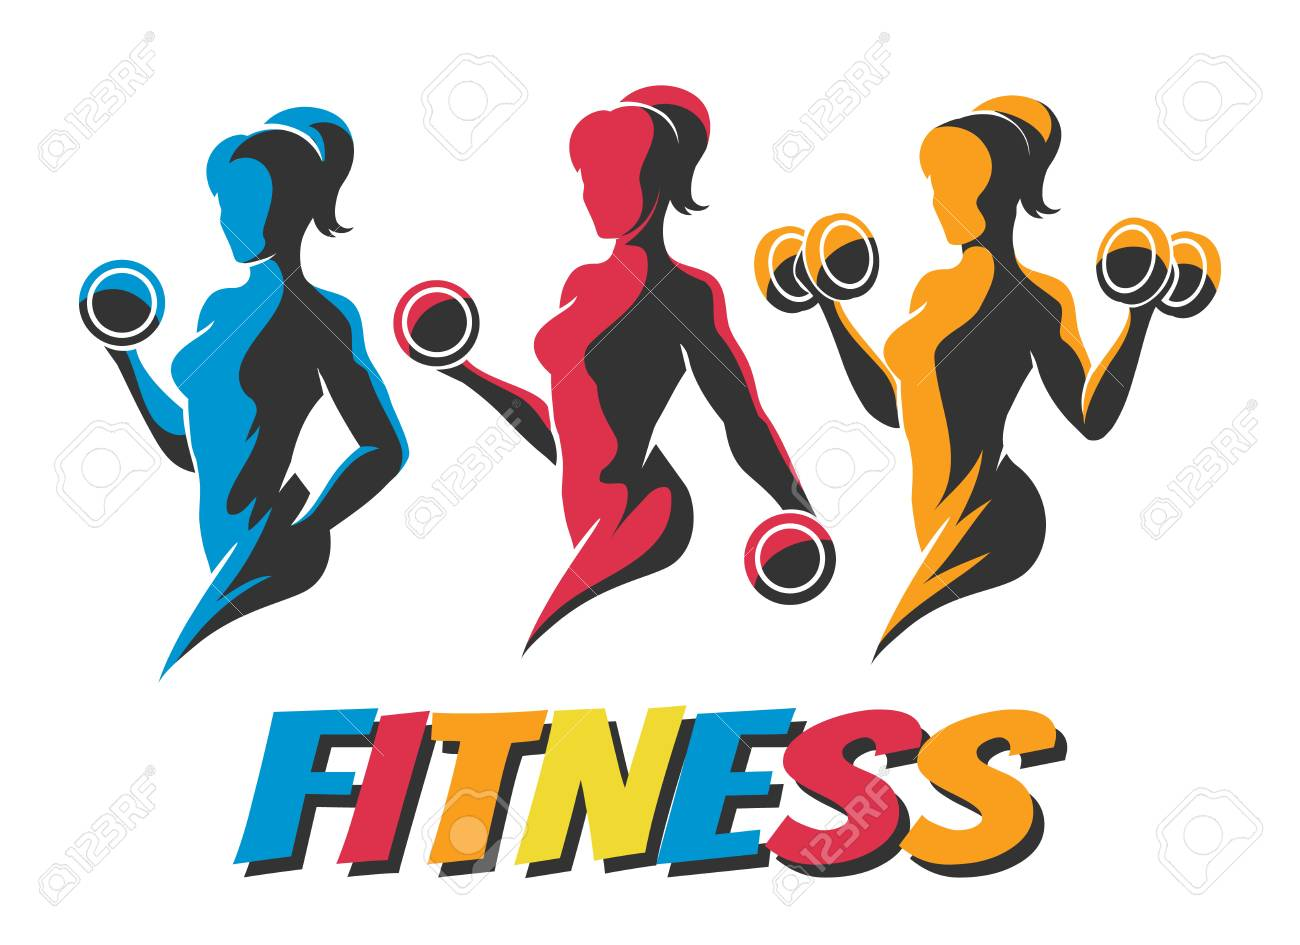 Three Colorful Woman Holding Weight Silhouettes.B odybuilder Logos Templates Set. Fitness Logo Design, Emblem Graphics. Vector Illustration. - 103542012